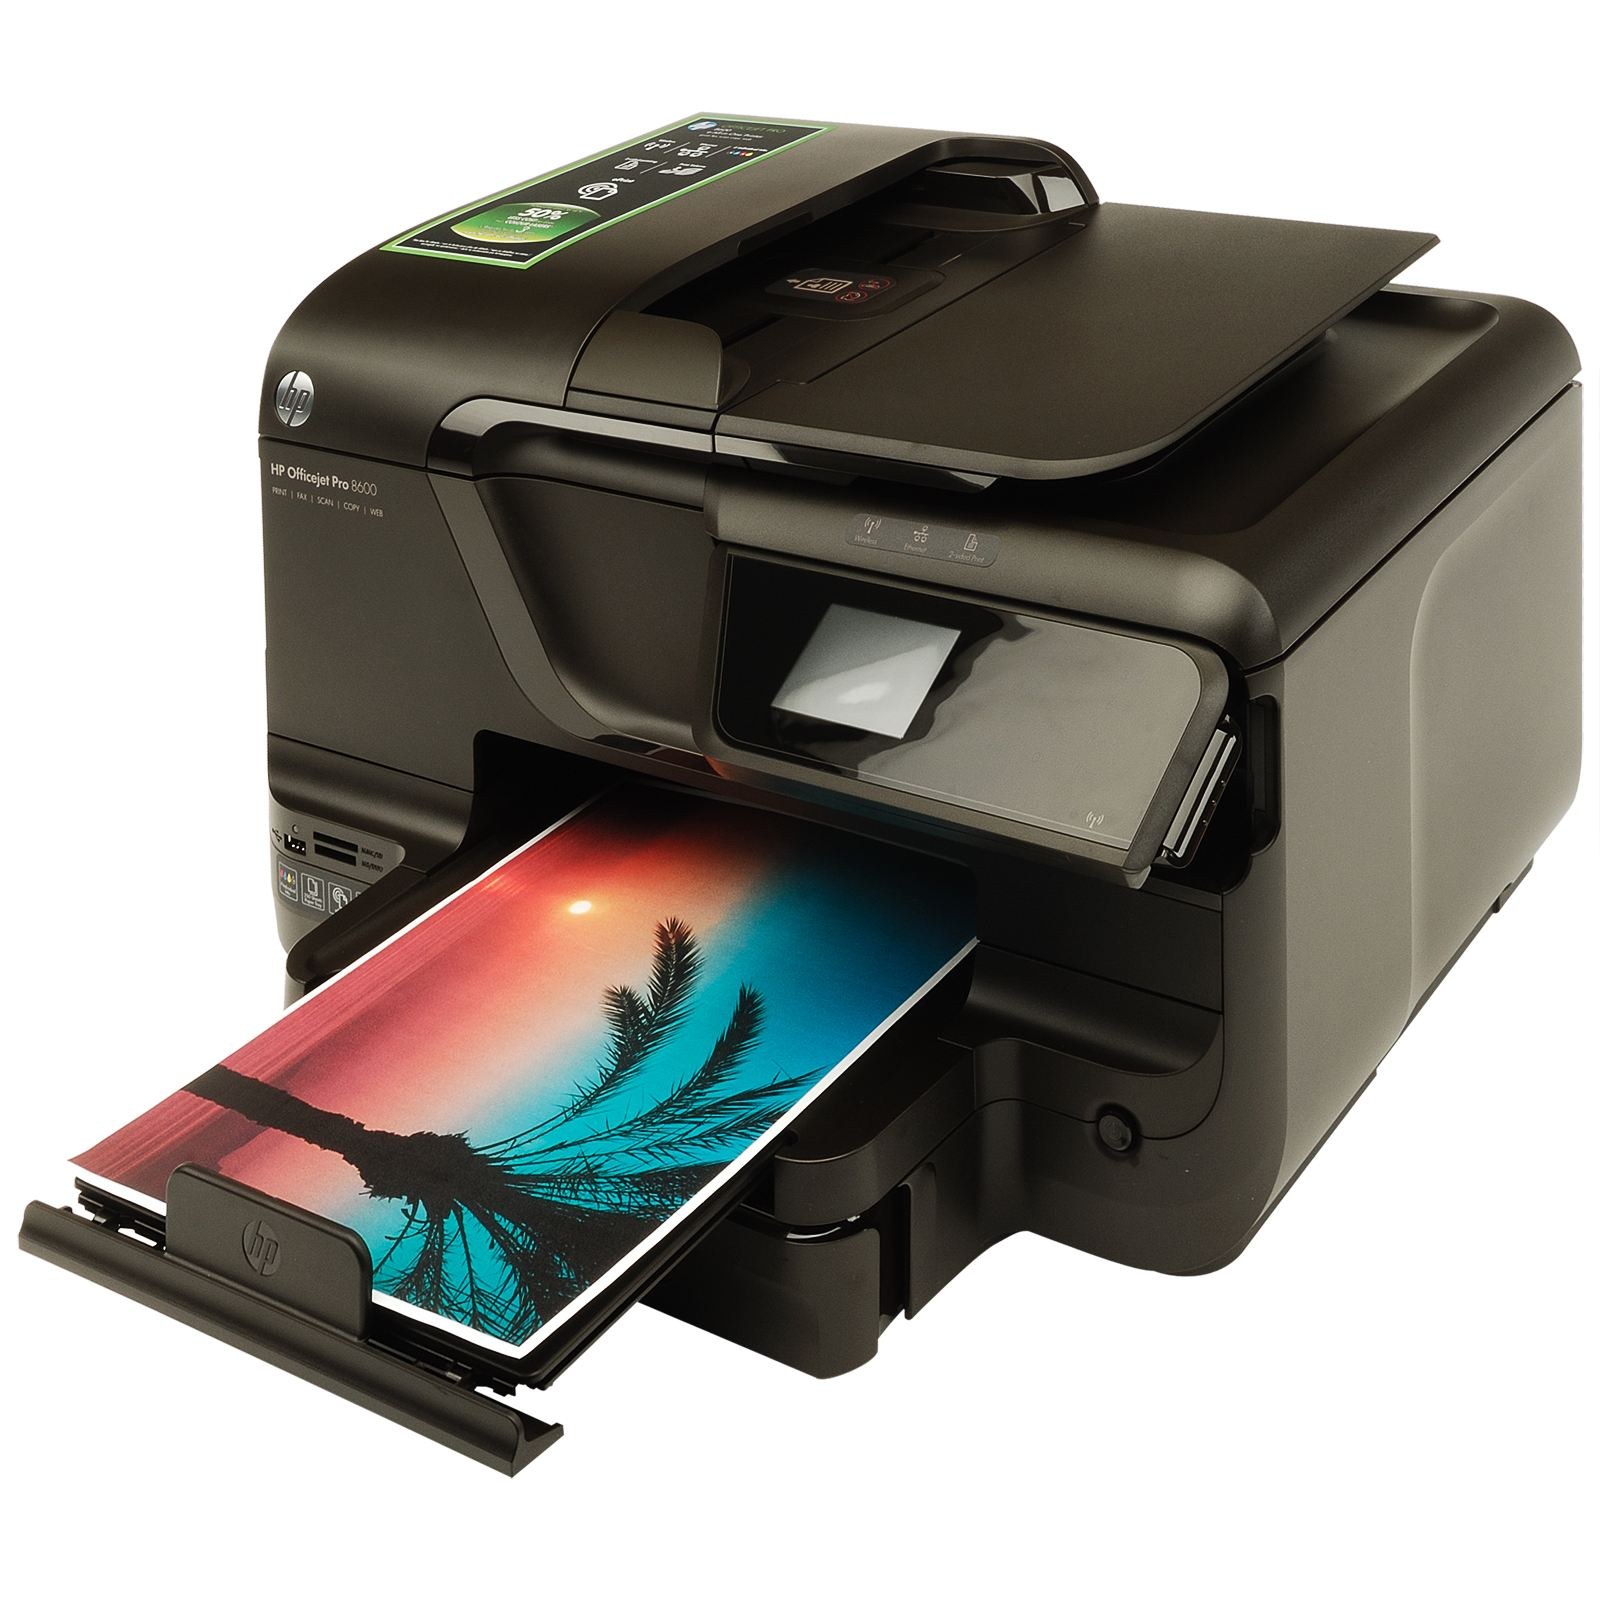 Hplip Custom Paper HelpOwl Com PACK HP GENUINE XL Black Amp Color Ink RETAIL BOX OFFICEJET